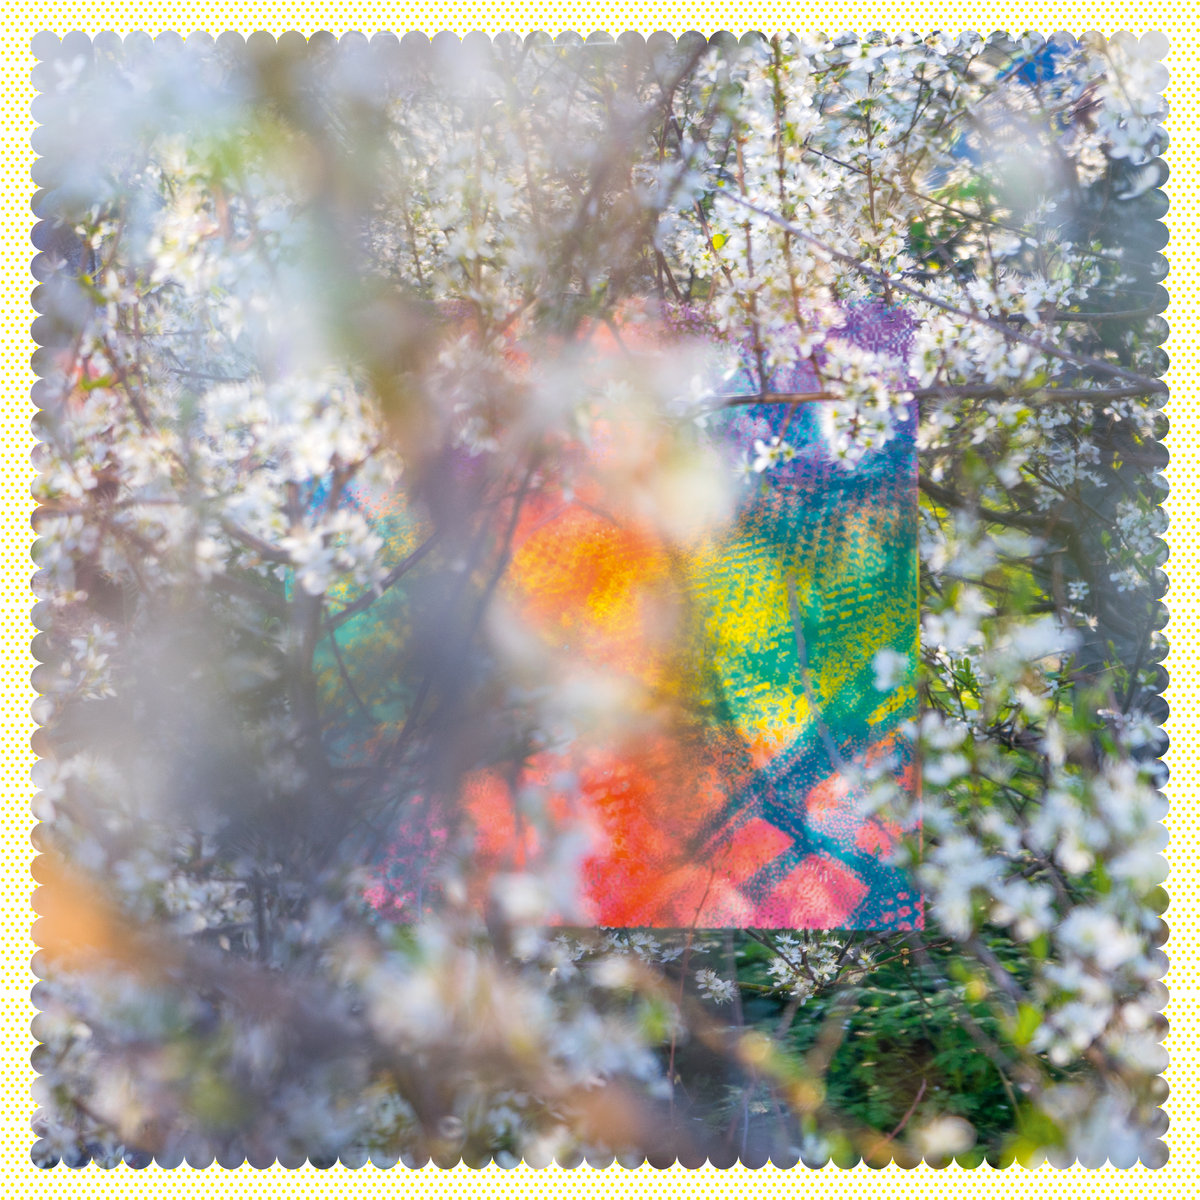 School by Four Tet